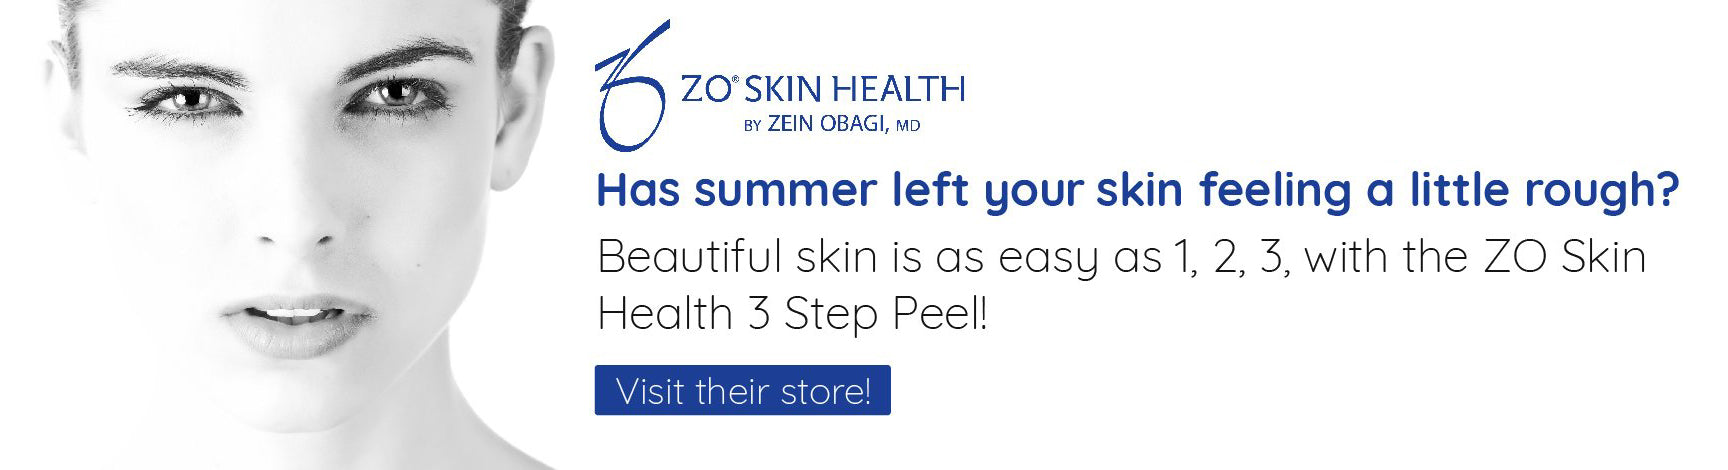 Browse our ZO Skin Care products recommendations!